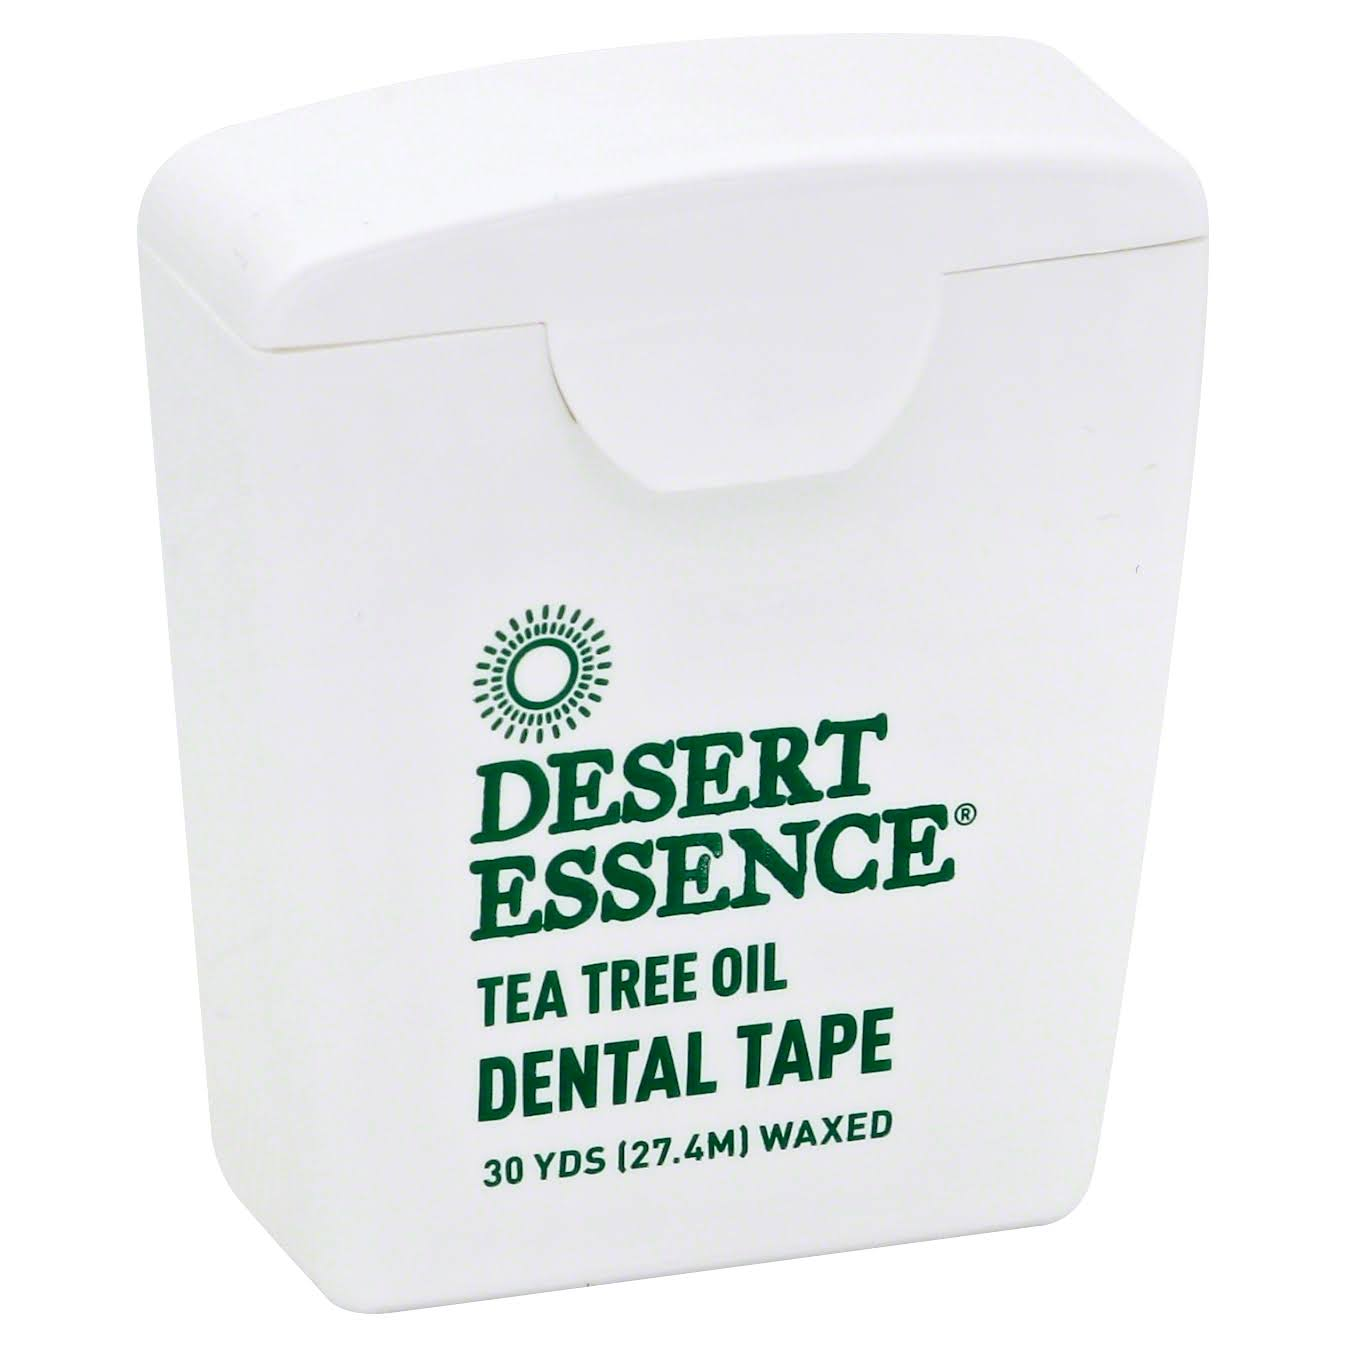 Desert Essence Dental Tape - Tea Tree Oil, 27.4m